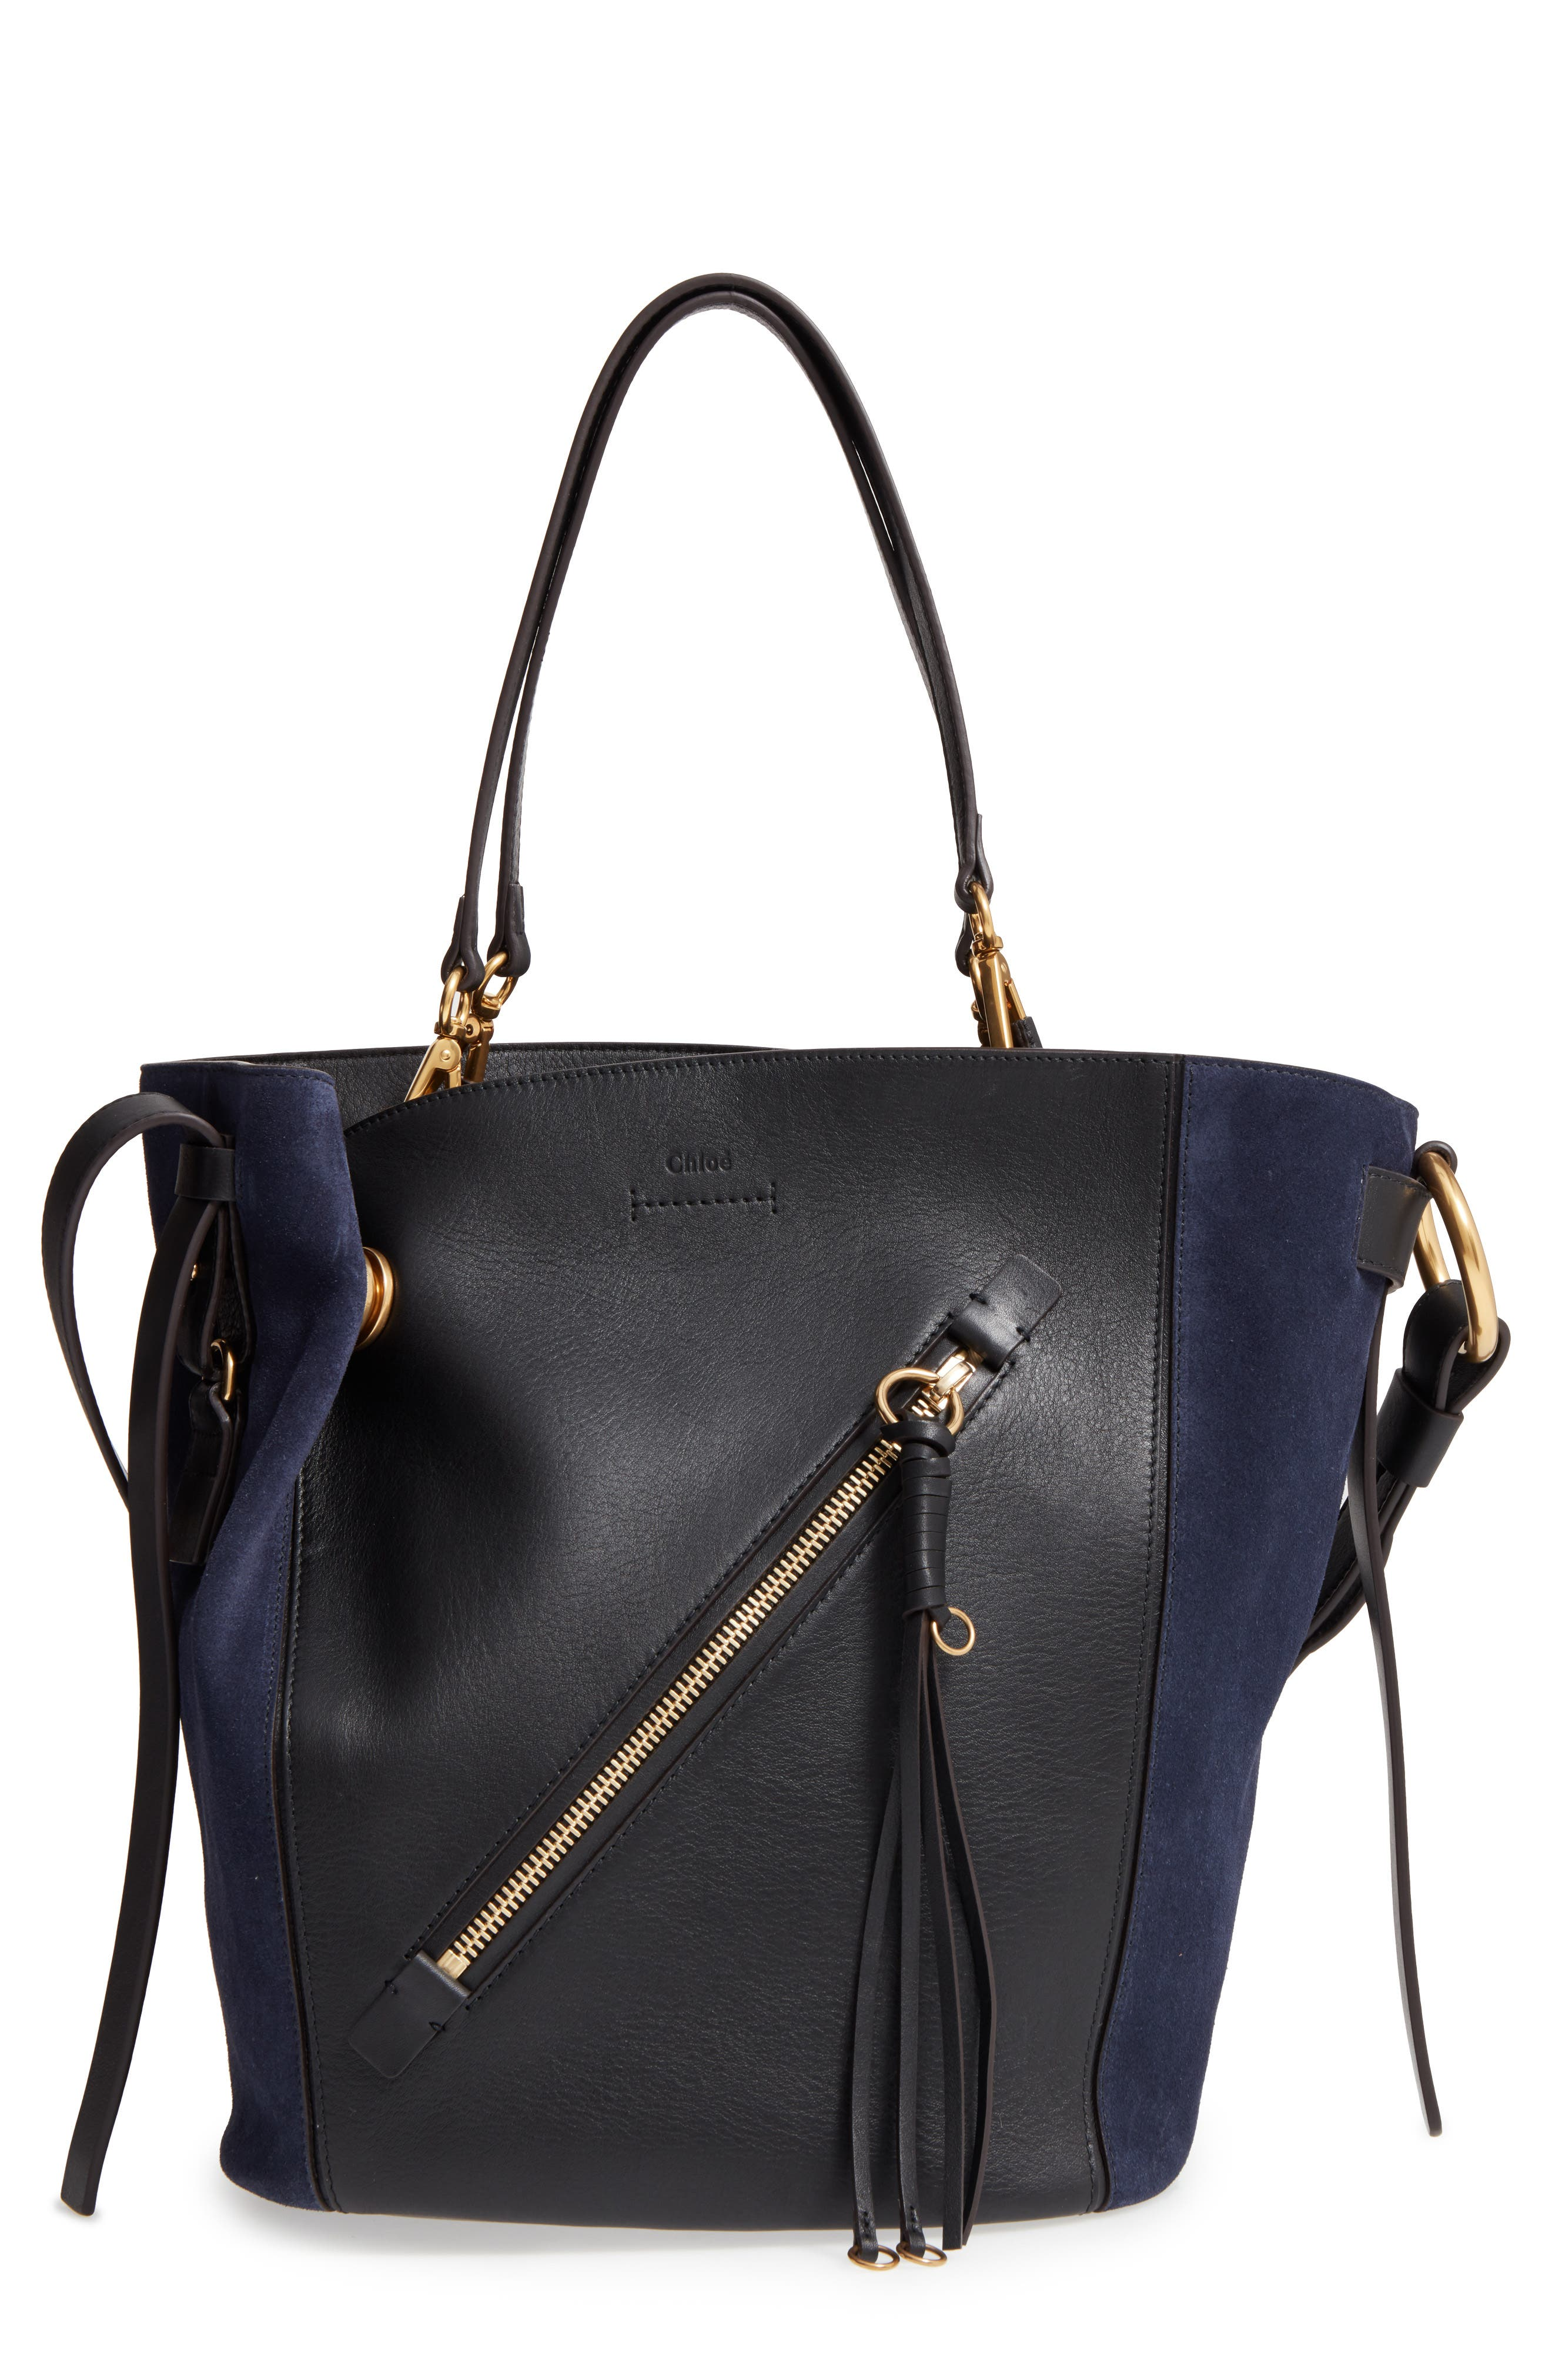 CHLOÉ Medium Myer Calfskin Leather & Suede Tote